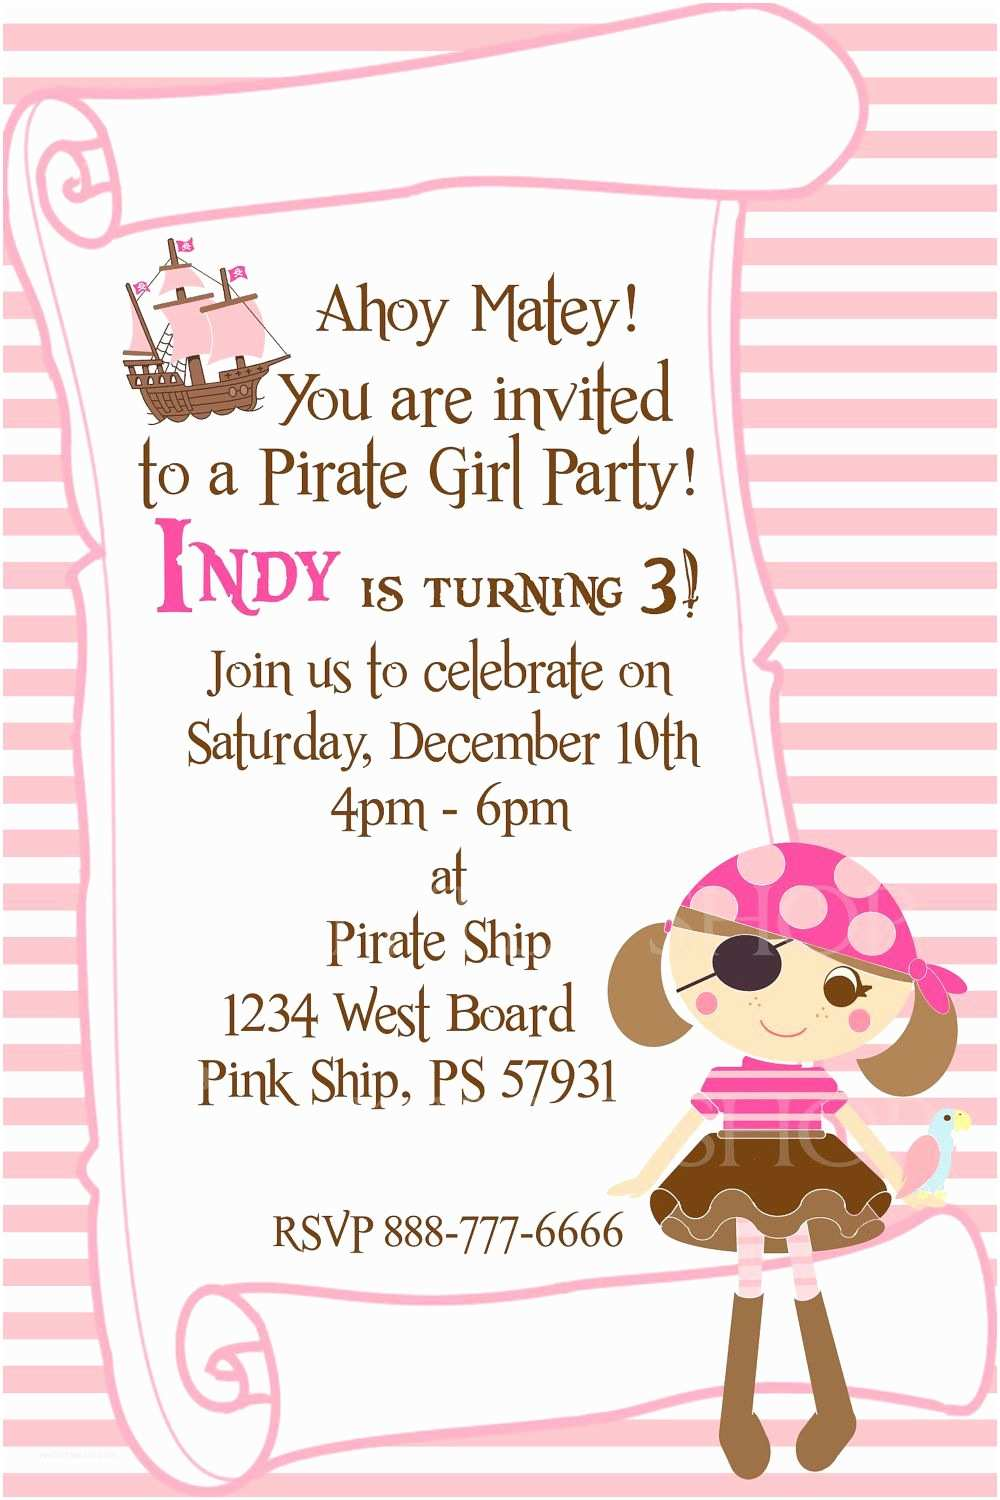 Girl Birthday Invitations Pirate Girl Party Invitation Card for A Girl Customize